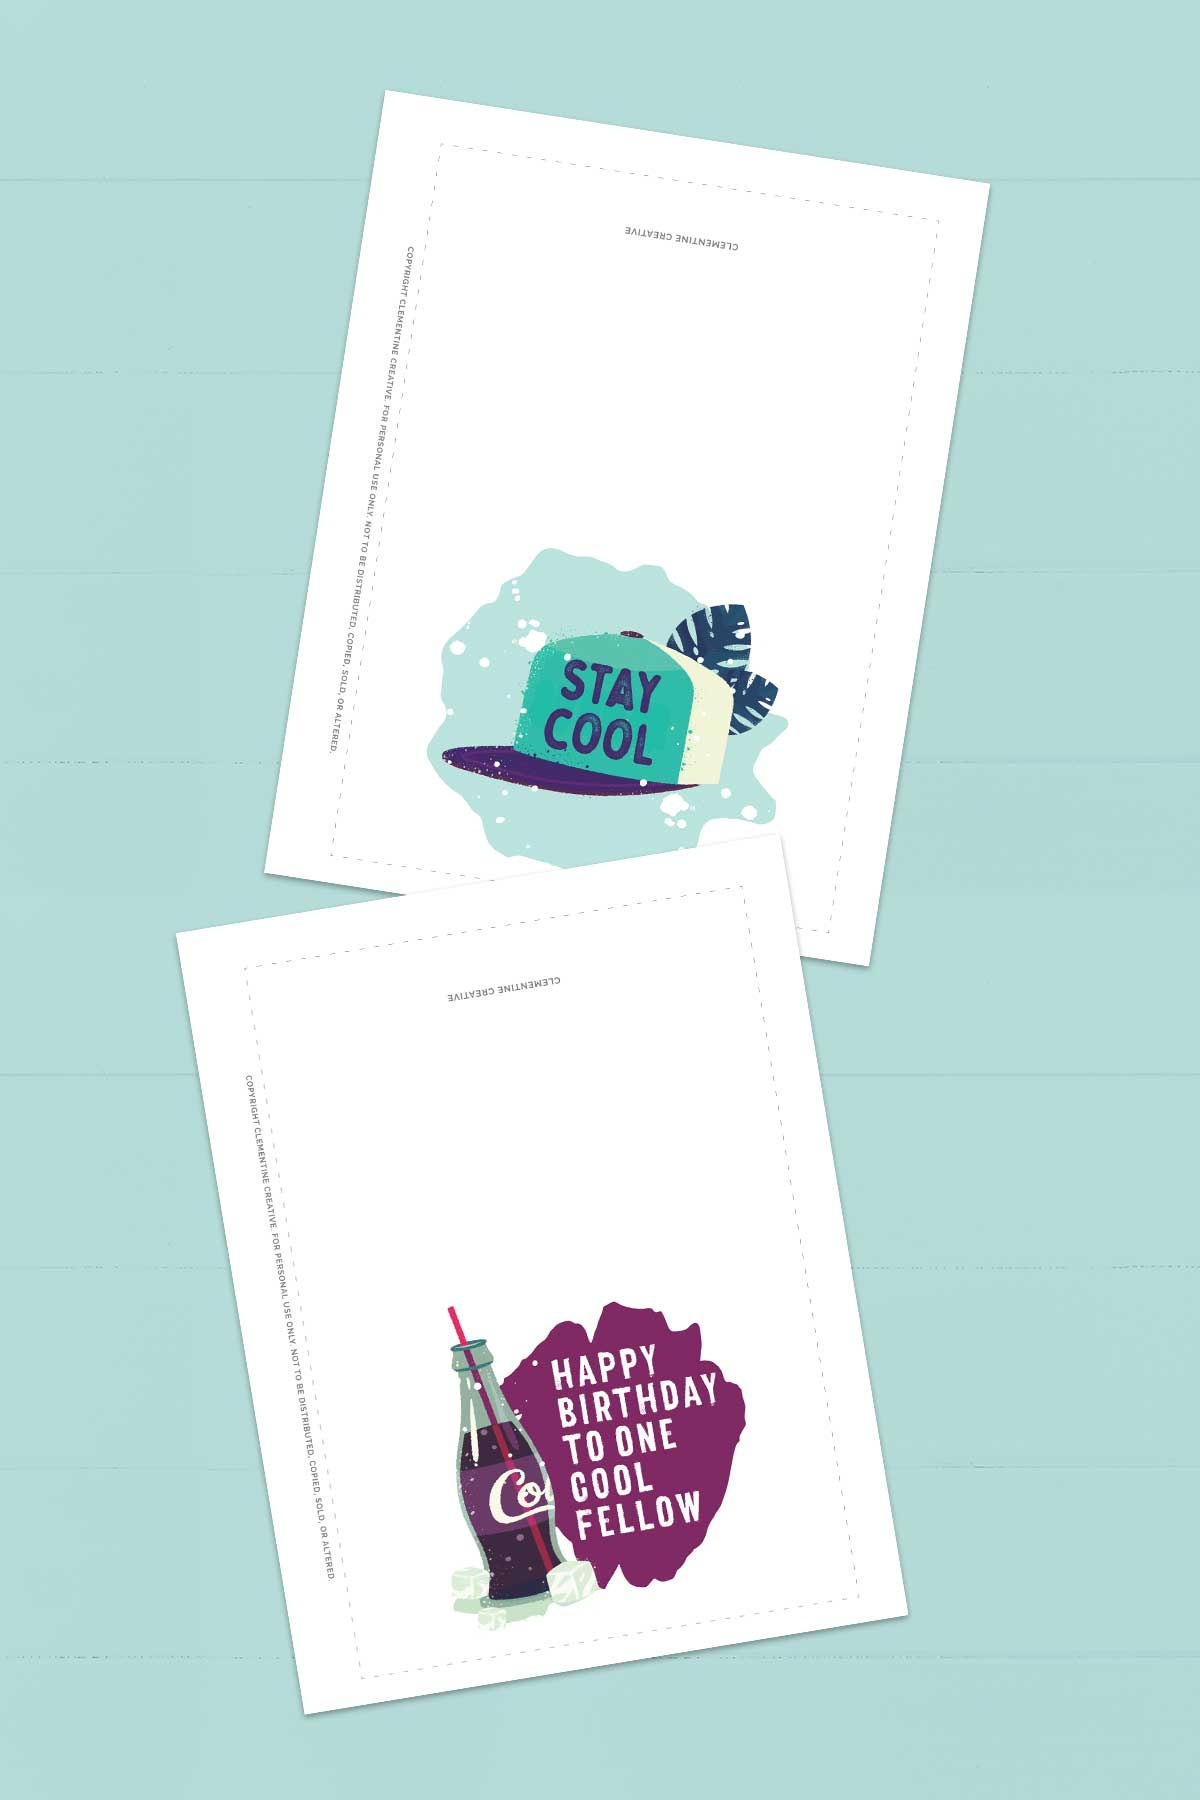 Free Printable Birthday Cards For Him | Stay Cool - Free Printable Birthday Cards For Him